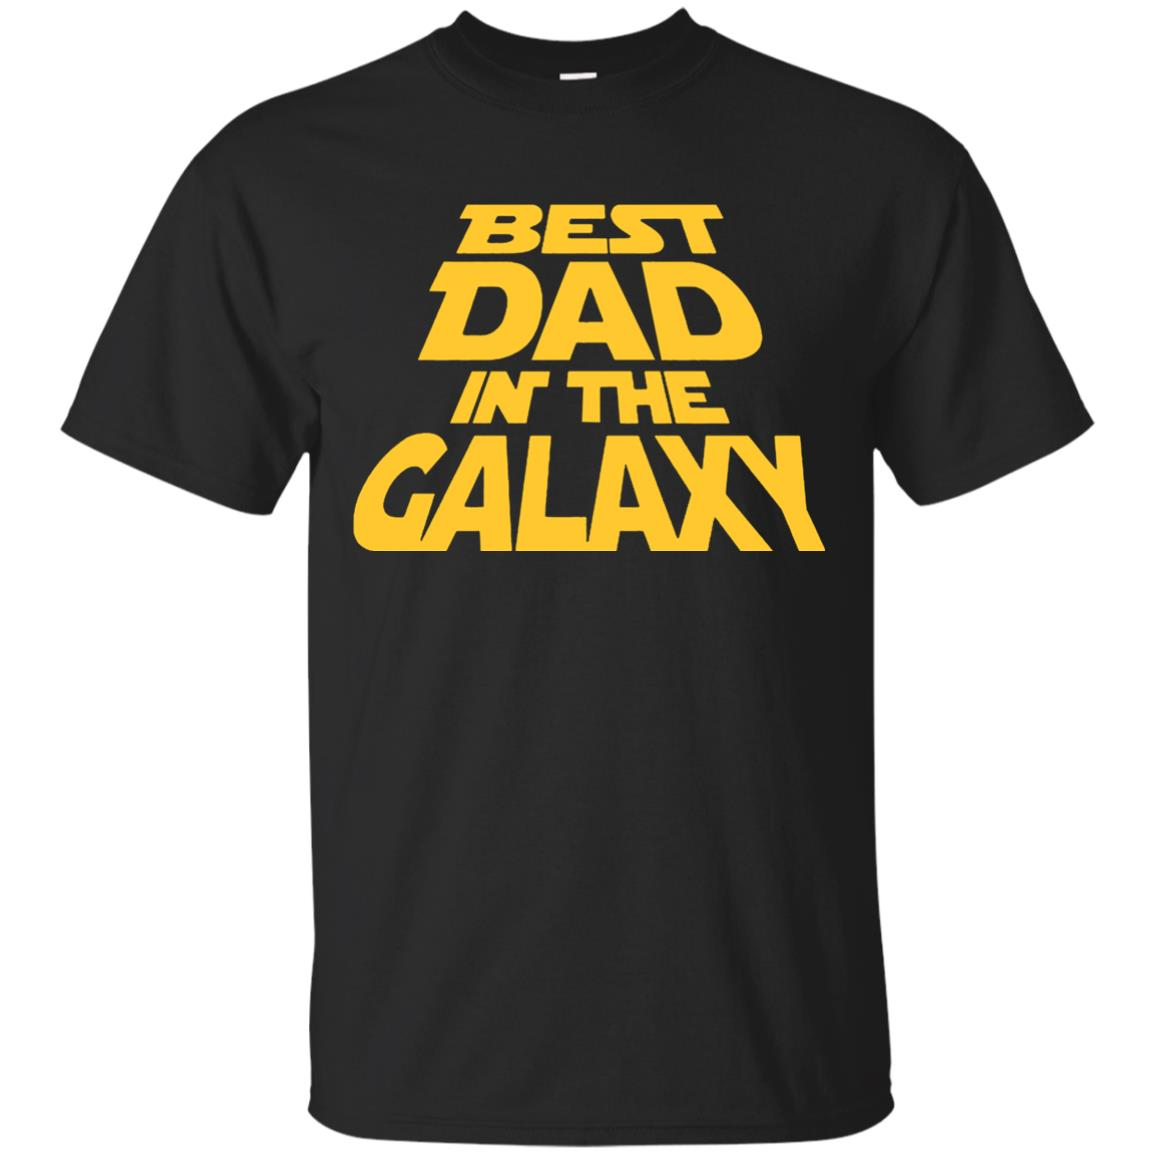 596dac57 Best Dad In The Galaxy Starwar Classic T-Shirt amazon best seller